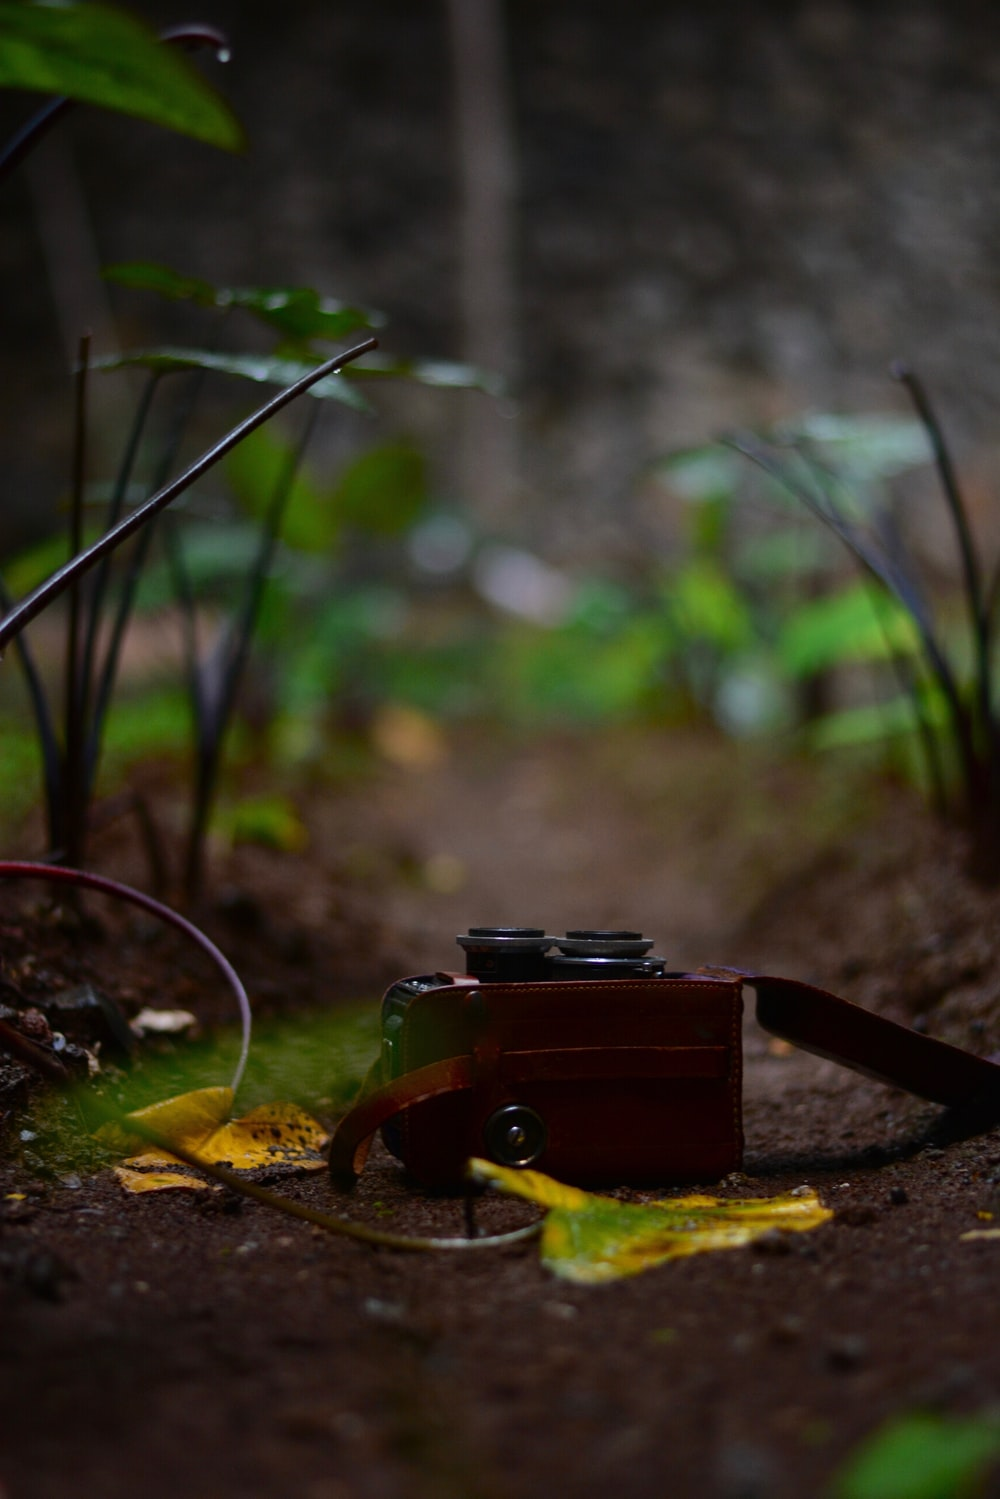 red camera on ground near green plants